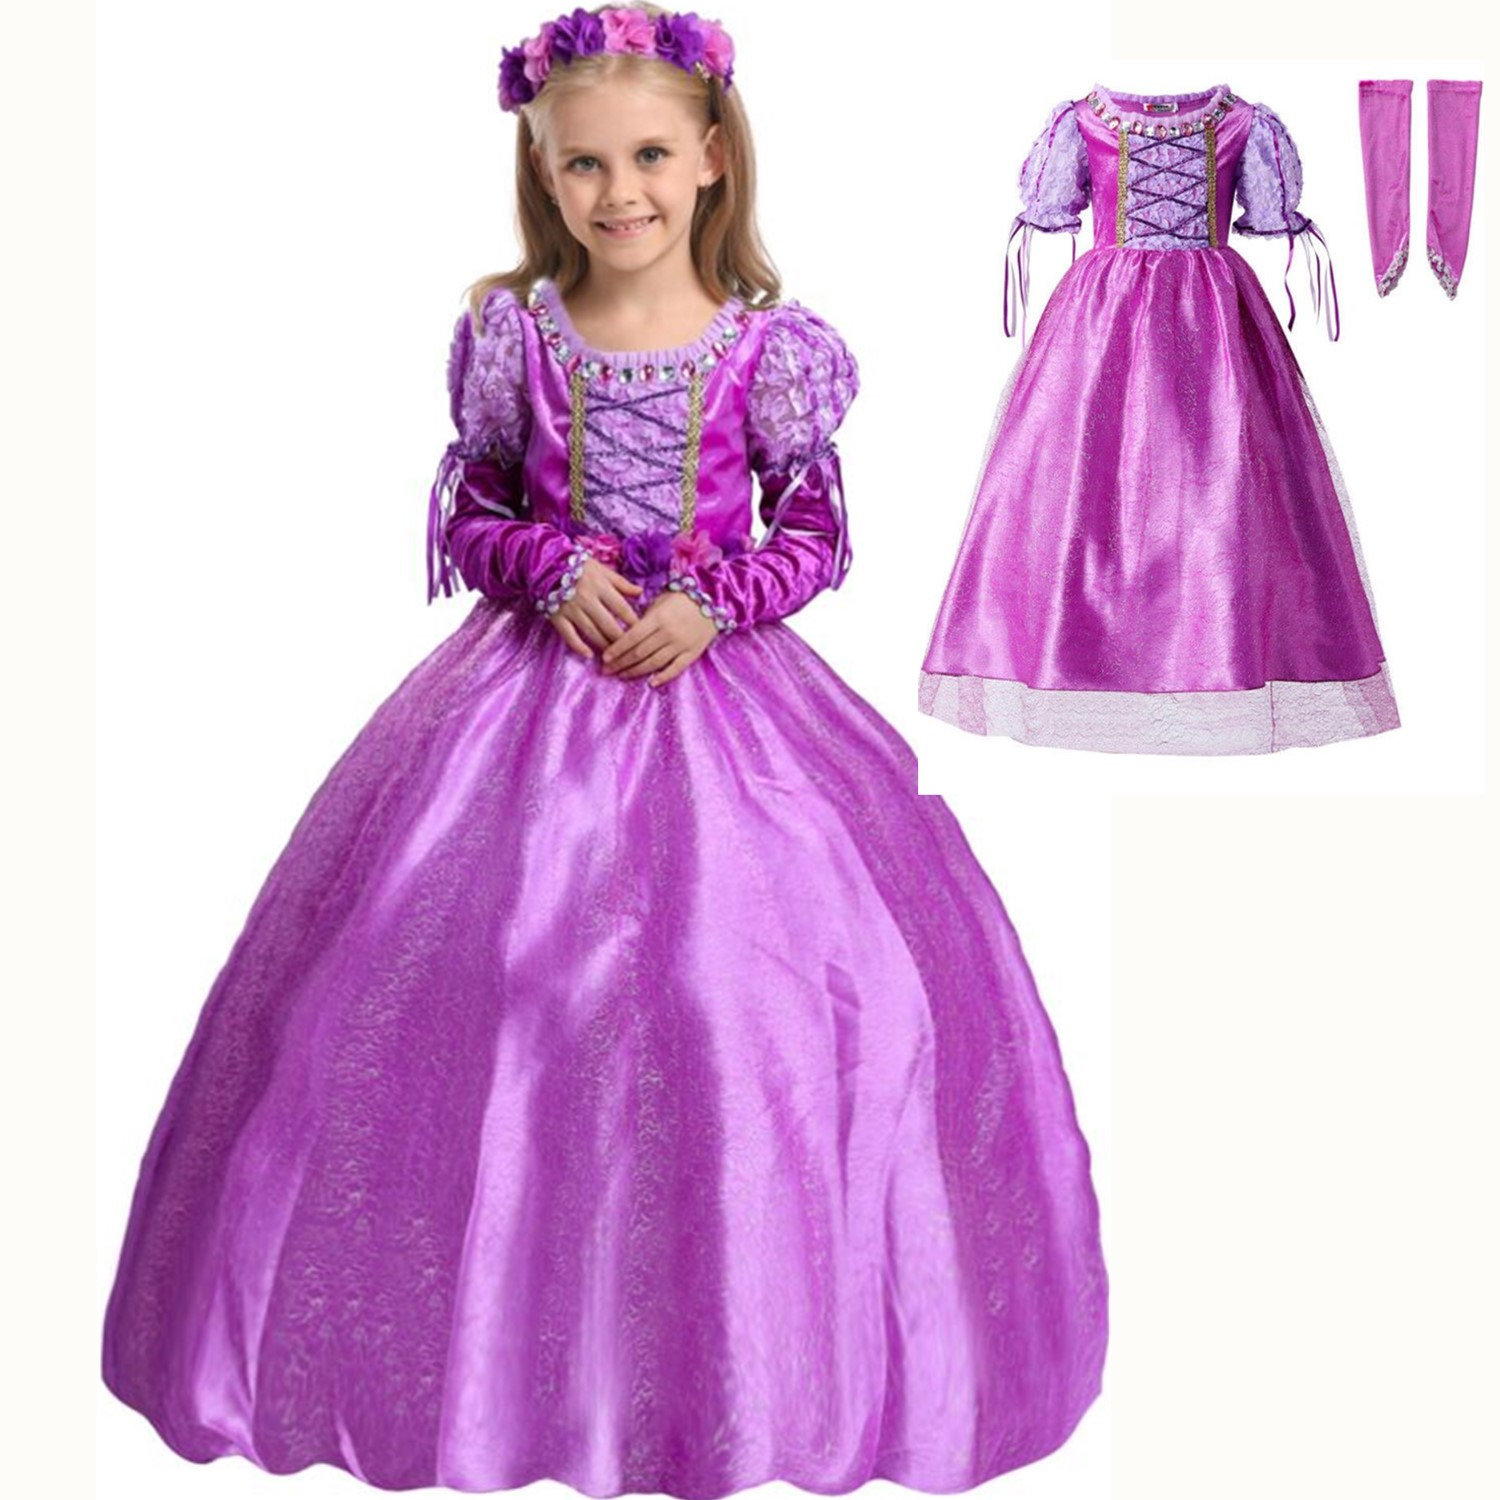 New Nip Disney Baby Girls Halloween Cinderella Costume 6: Disney Inspired Dress Rapunzel Princess Costume Kids Girls